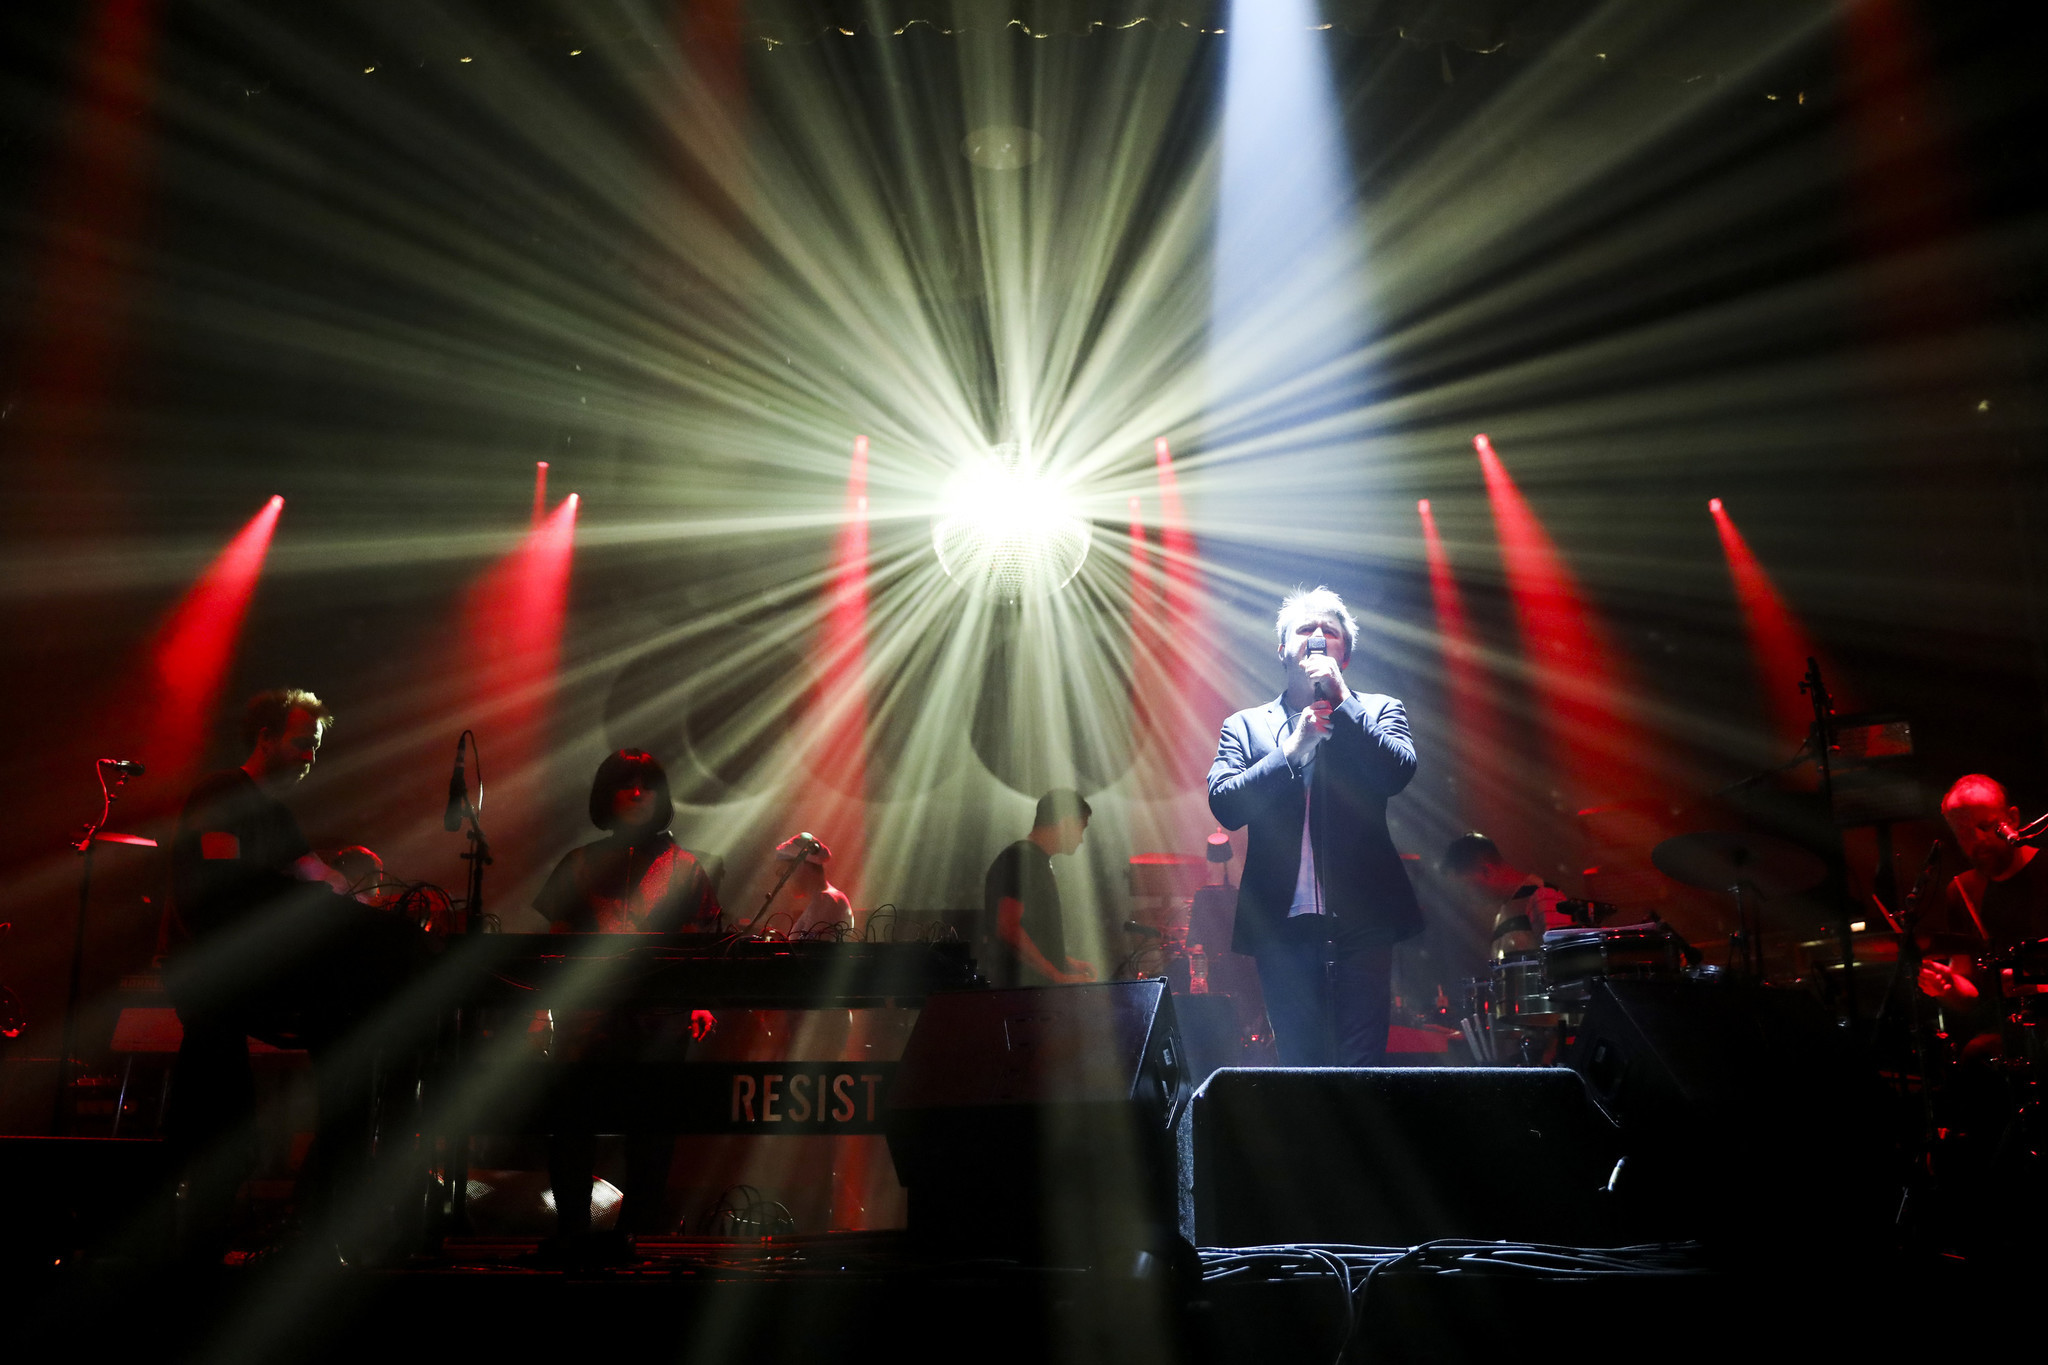 lcd soundsystem and a mirror ball reign supreme at aragon chicago